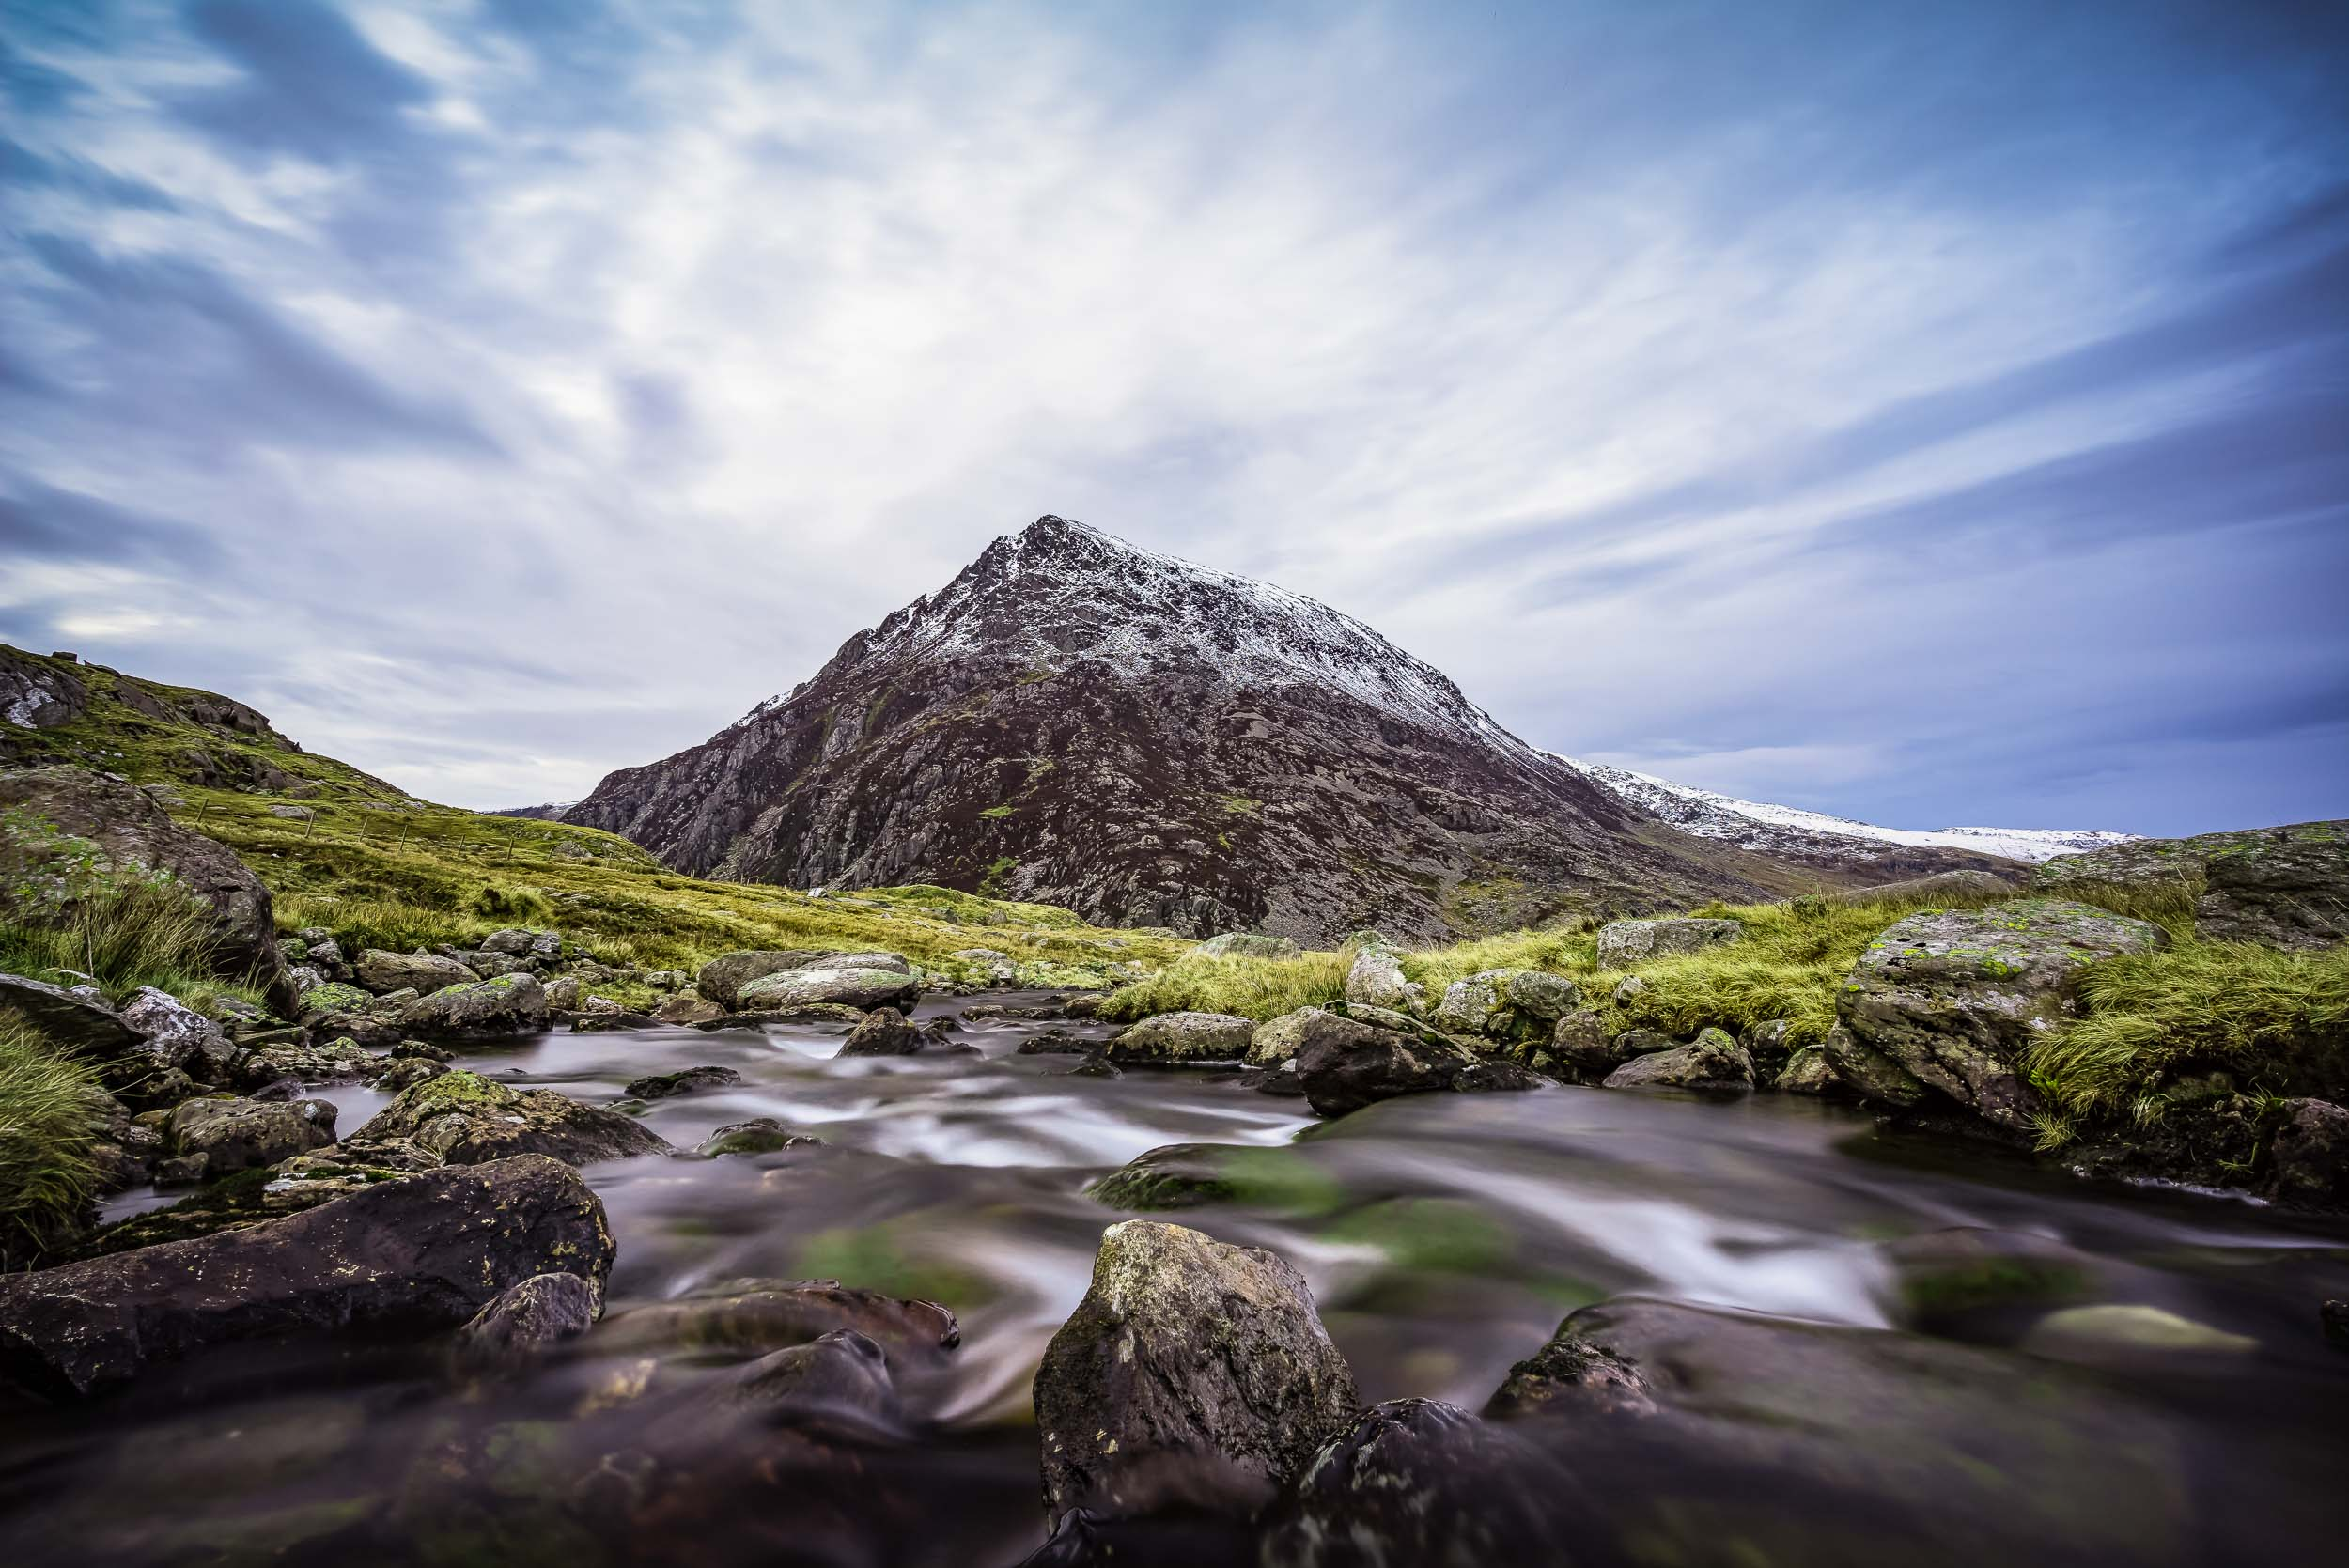 Pen yr Ole Wen from one of many streams out of the mountains. 17mm, ISO100, f/8, 15 seconds.